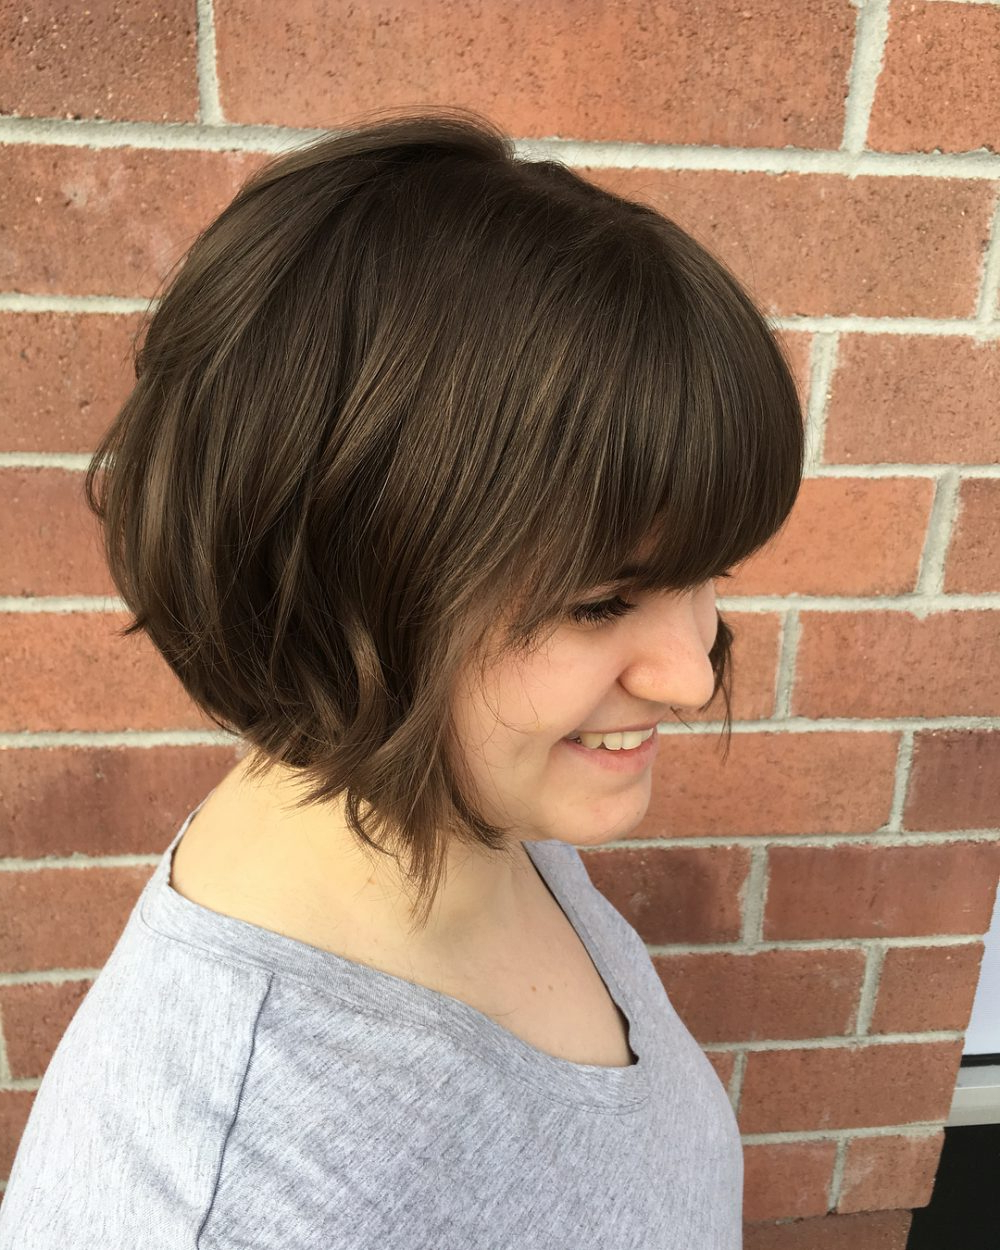 34 Greatest Short Haircuts And Hairstyles For Thick Hair For 2018 With Regard To Layered Short Hairstyles With Bangs (View 21 of 25)